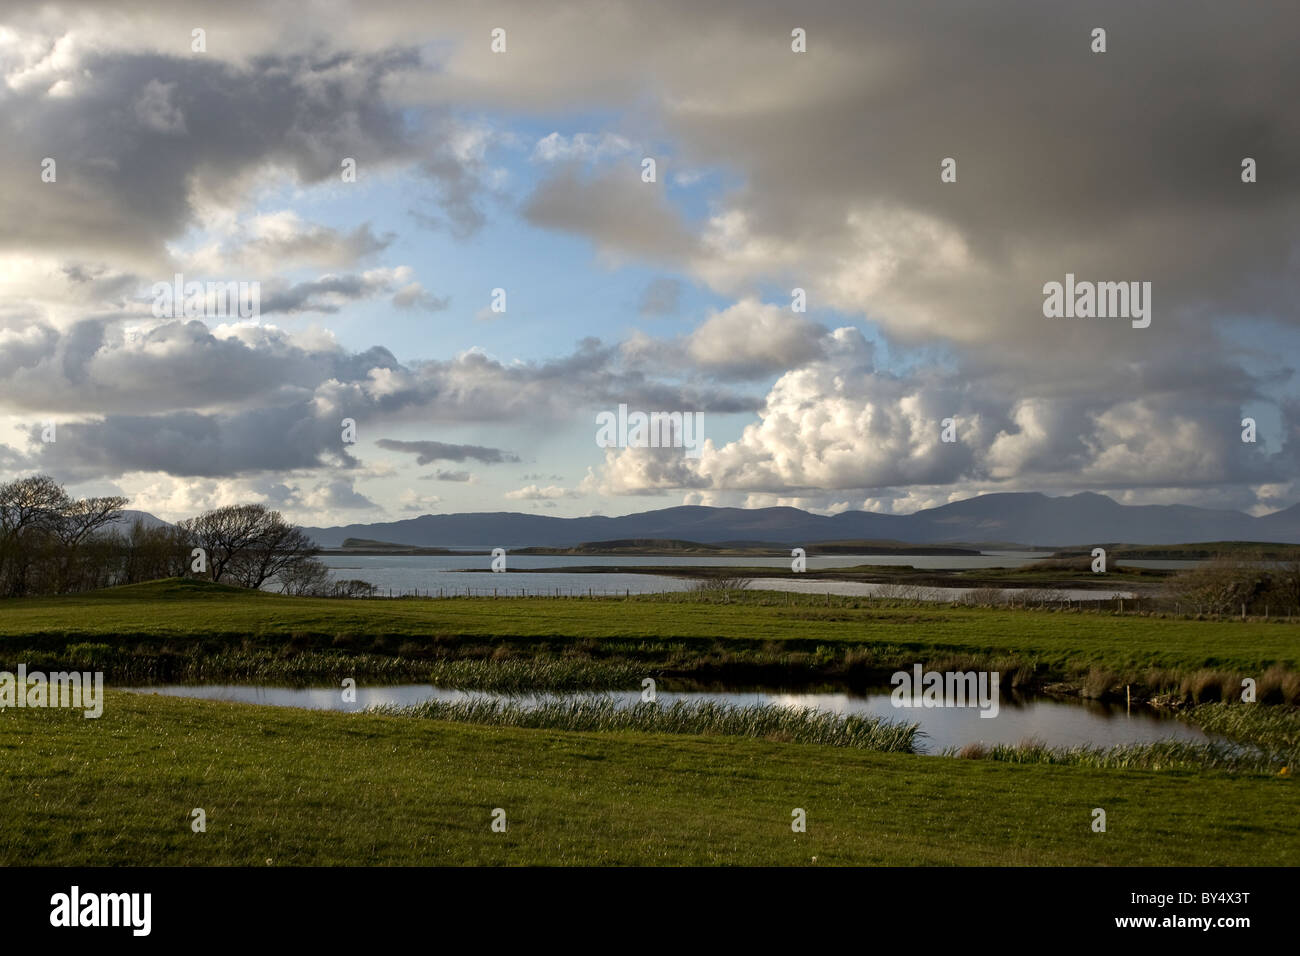 Loch and mountains which typify the scenery of Western Ireland - Stock Image